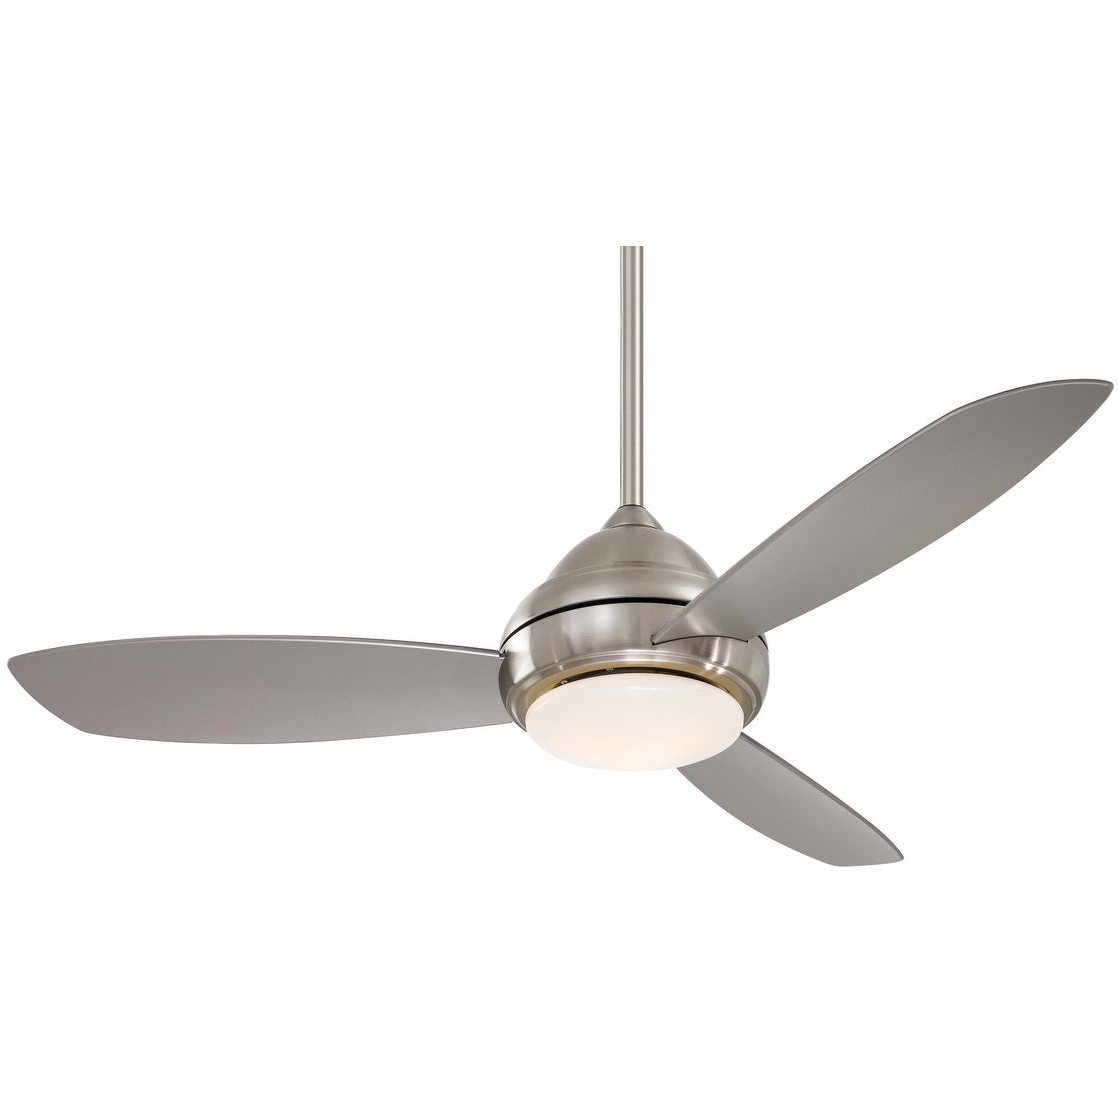 "Concept 3 Blade Led Ceiling Fans Throughout Recent Minkaaire Concept I 52 Led Concept I 52"" 3 Blade Indoor Ceiling Fan – Integrated Led Light Kit, Handheld Remote, And Blades (View 8 of 20)"